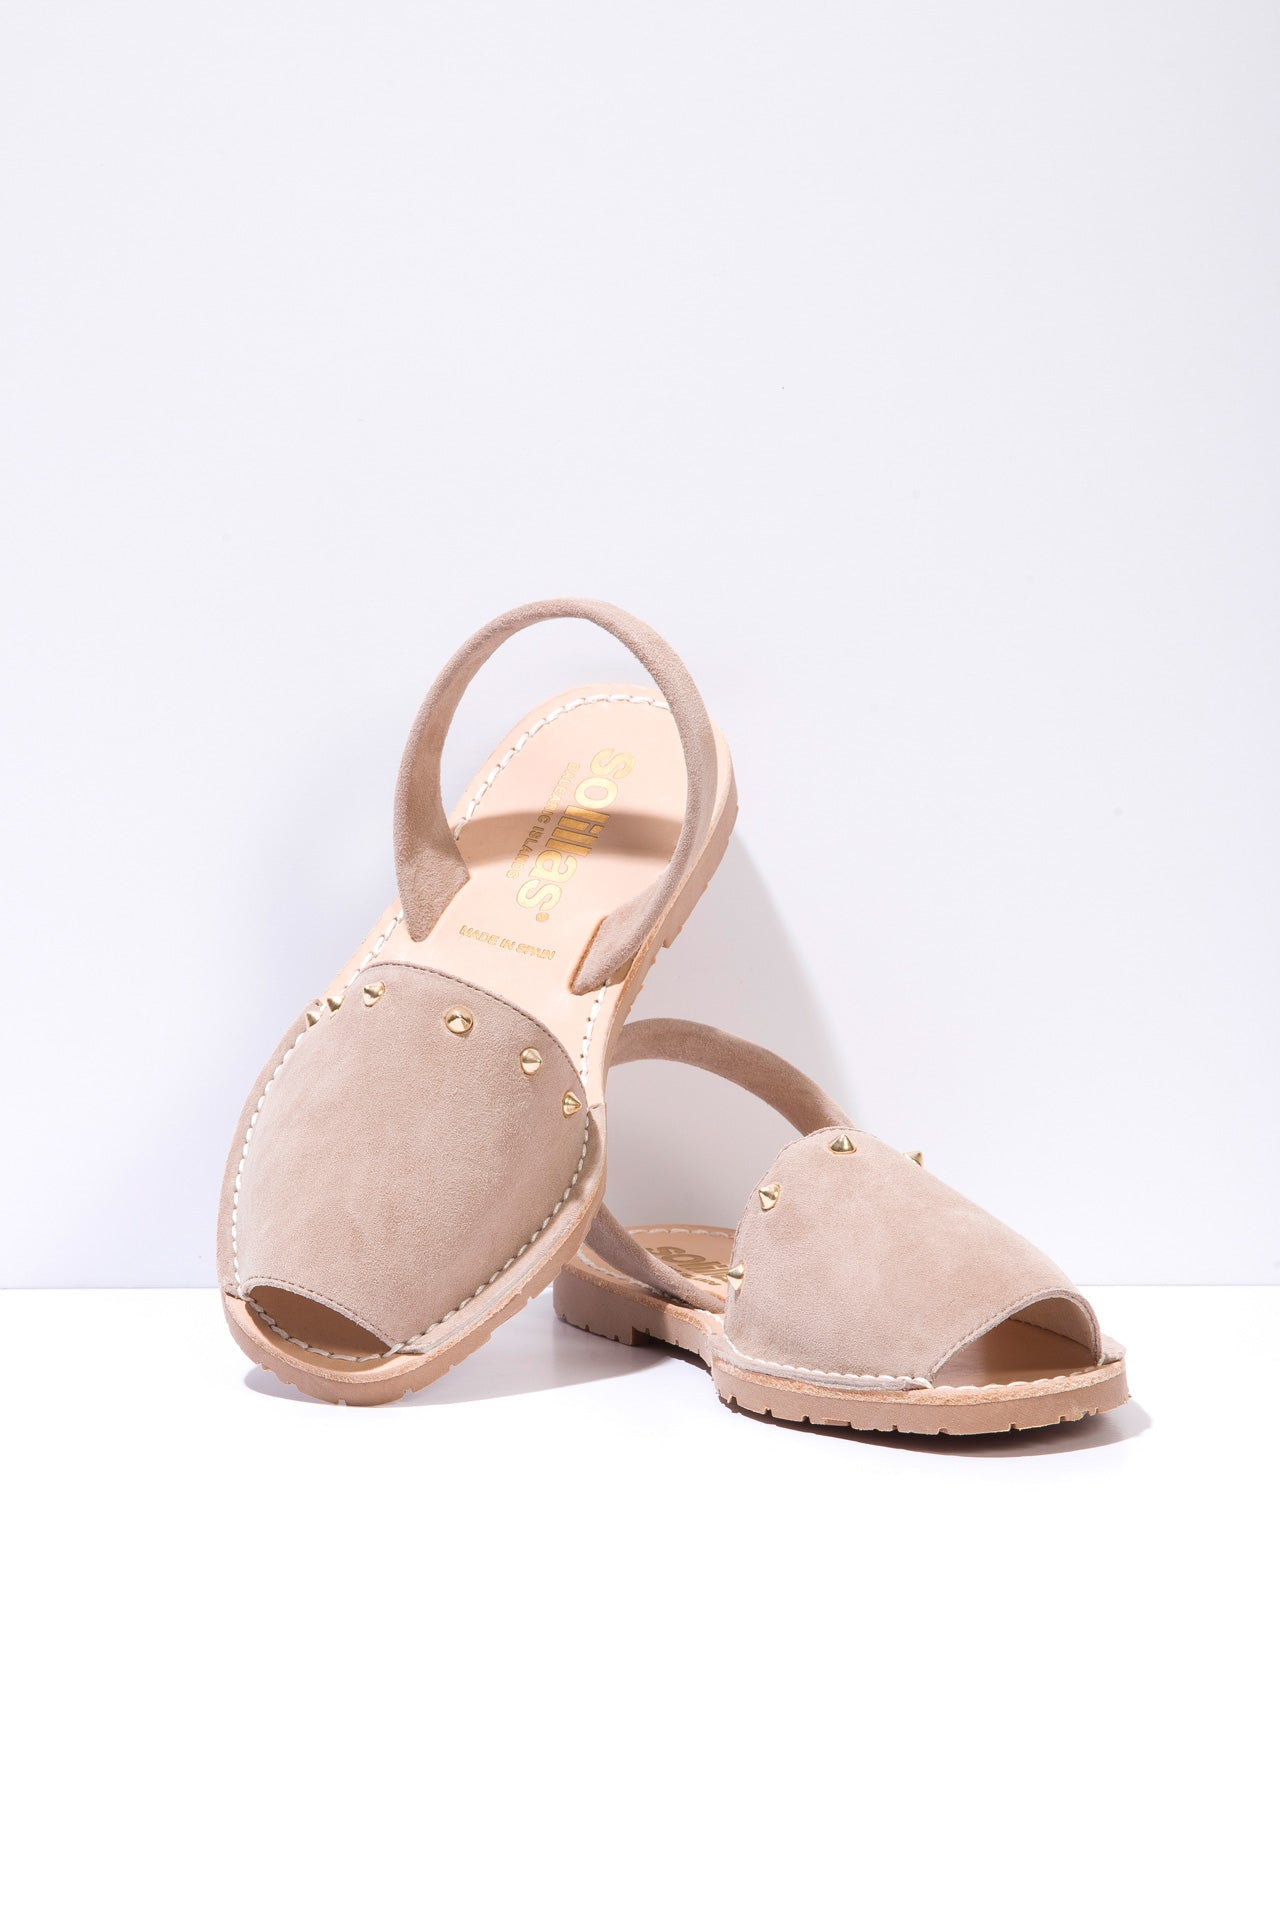 Gris Clavo - Studded Leather Menorcan sandals